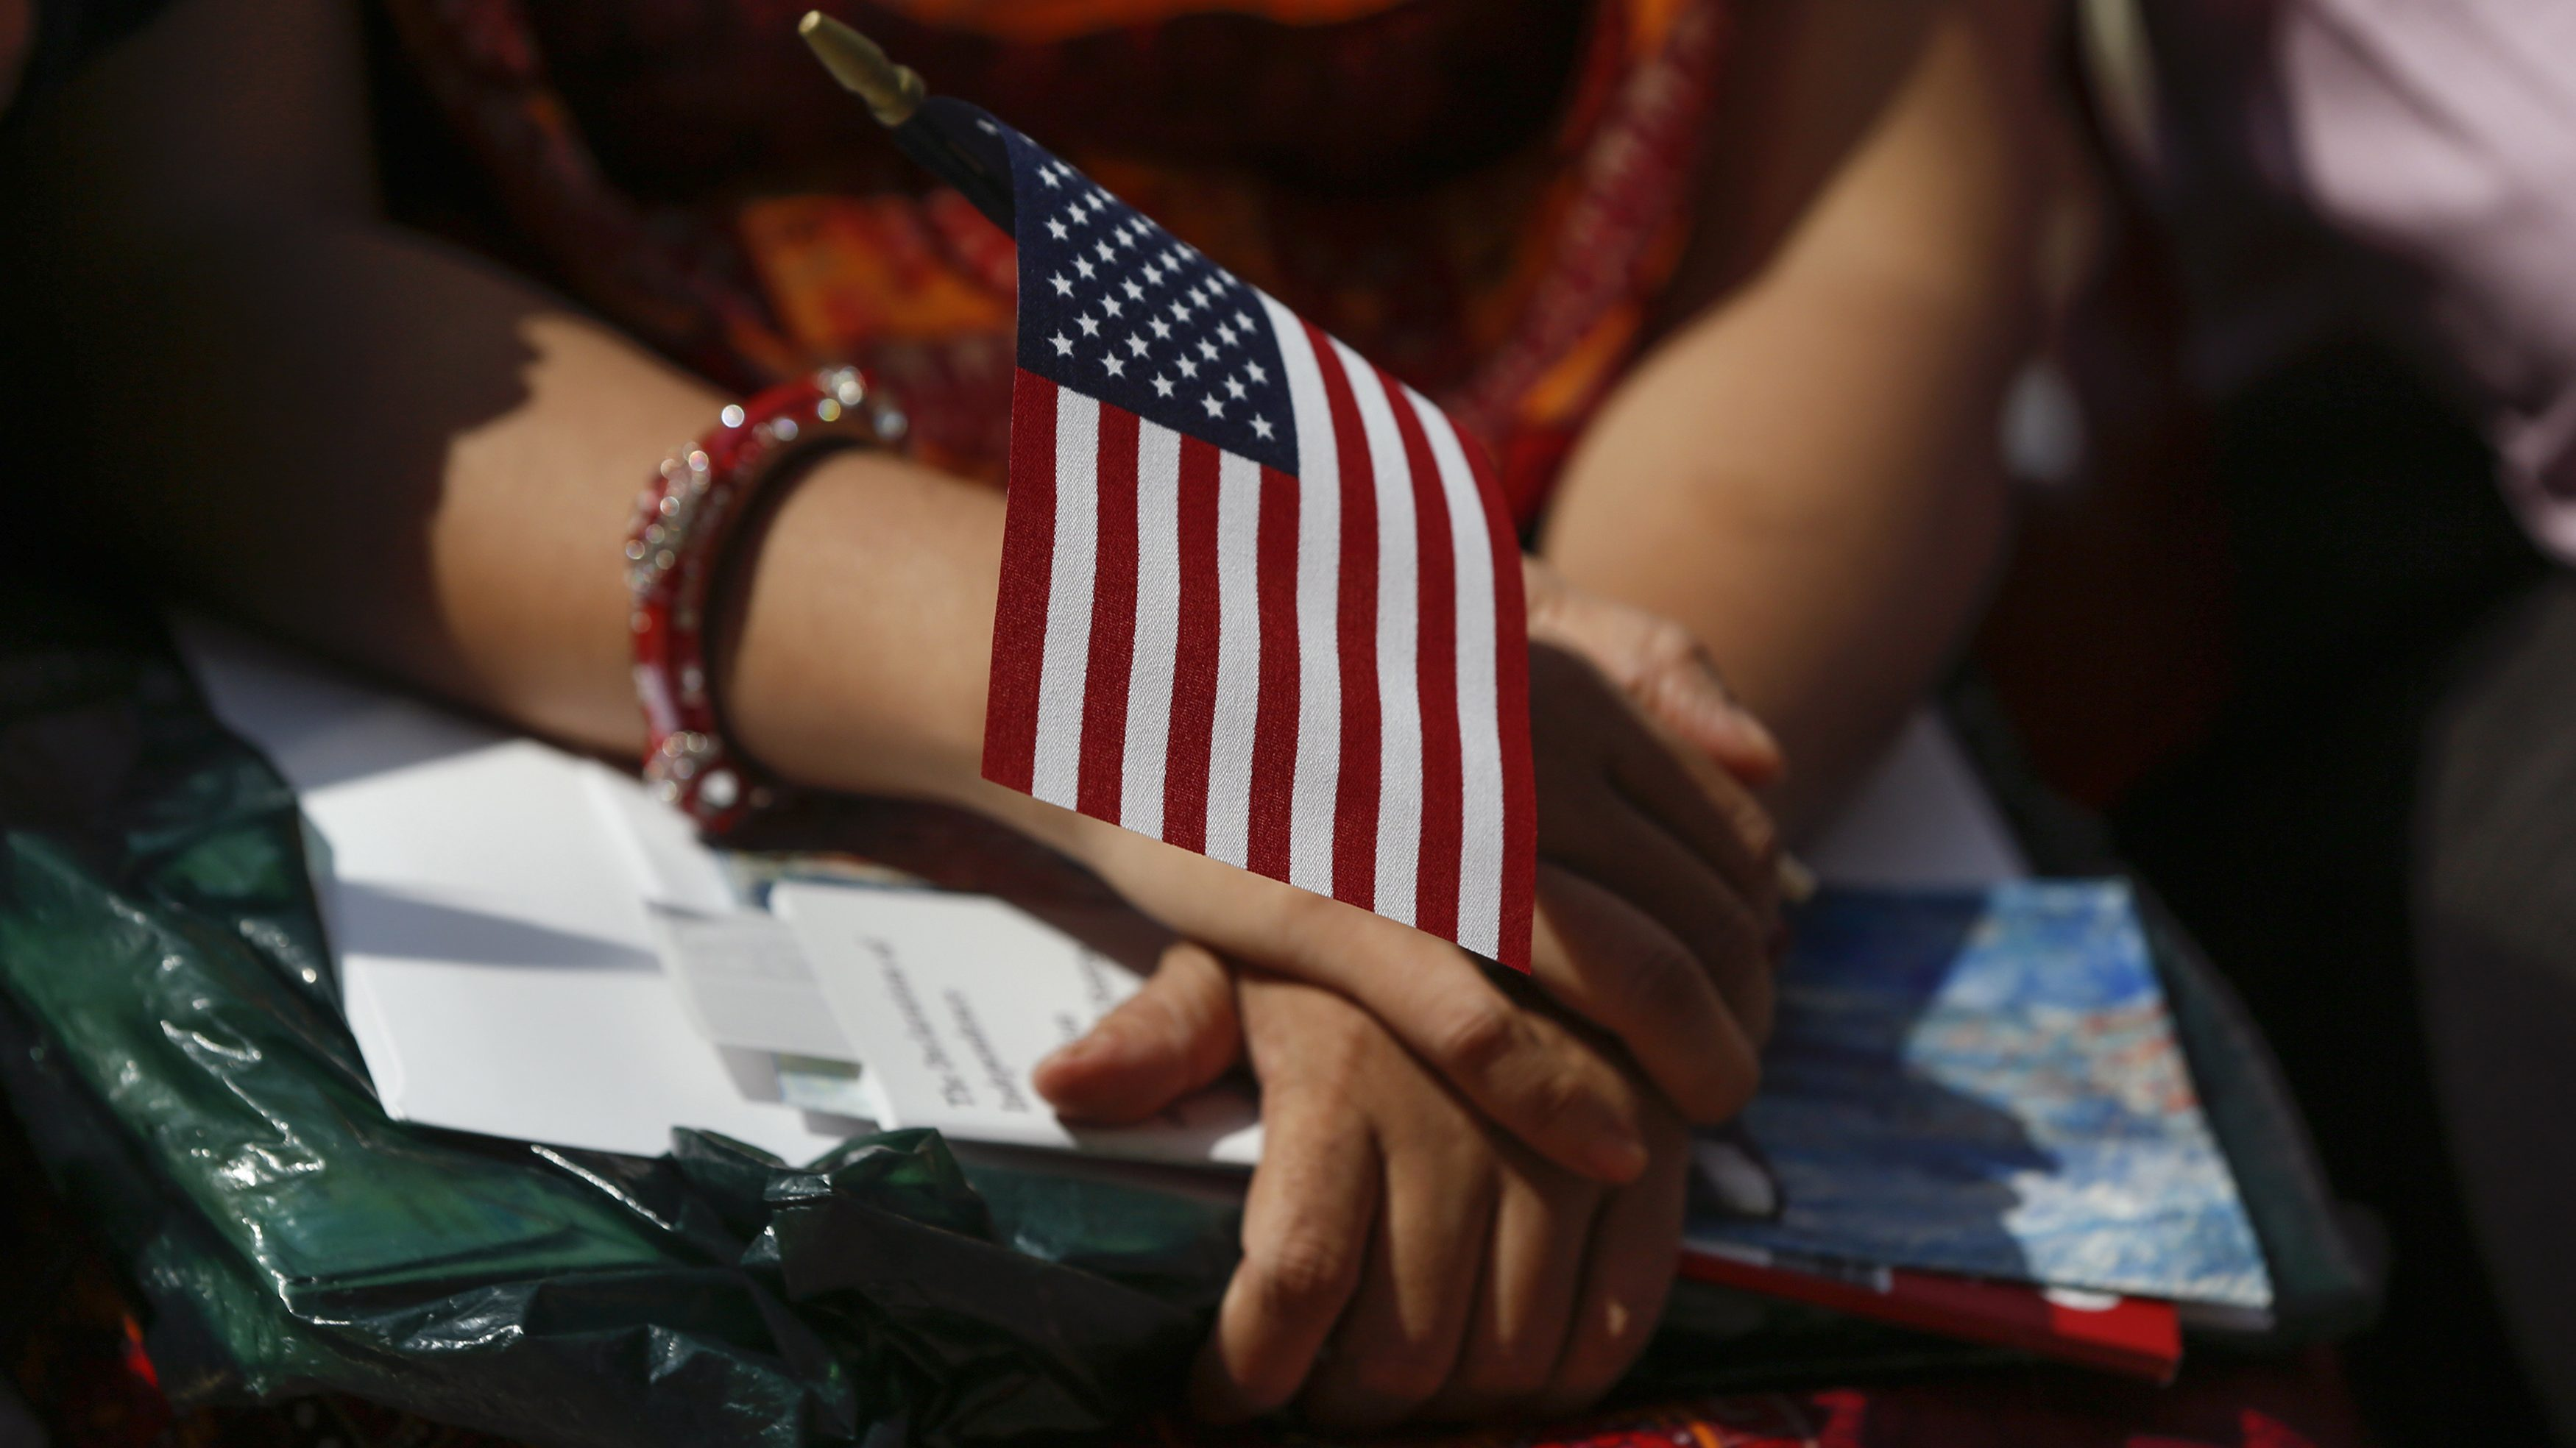 A new American citizen holds a U.S. flag during a naturalization ceremony at The Metropolitan Museum of Art in New York